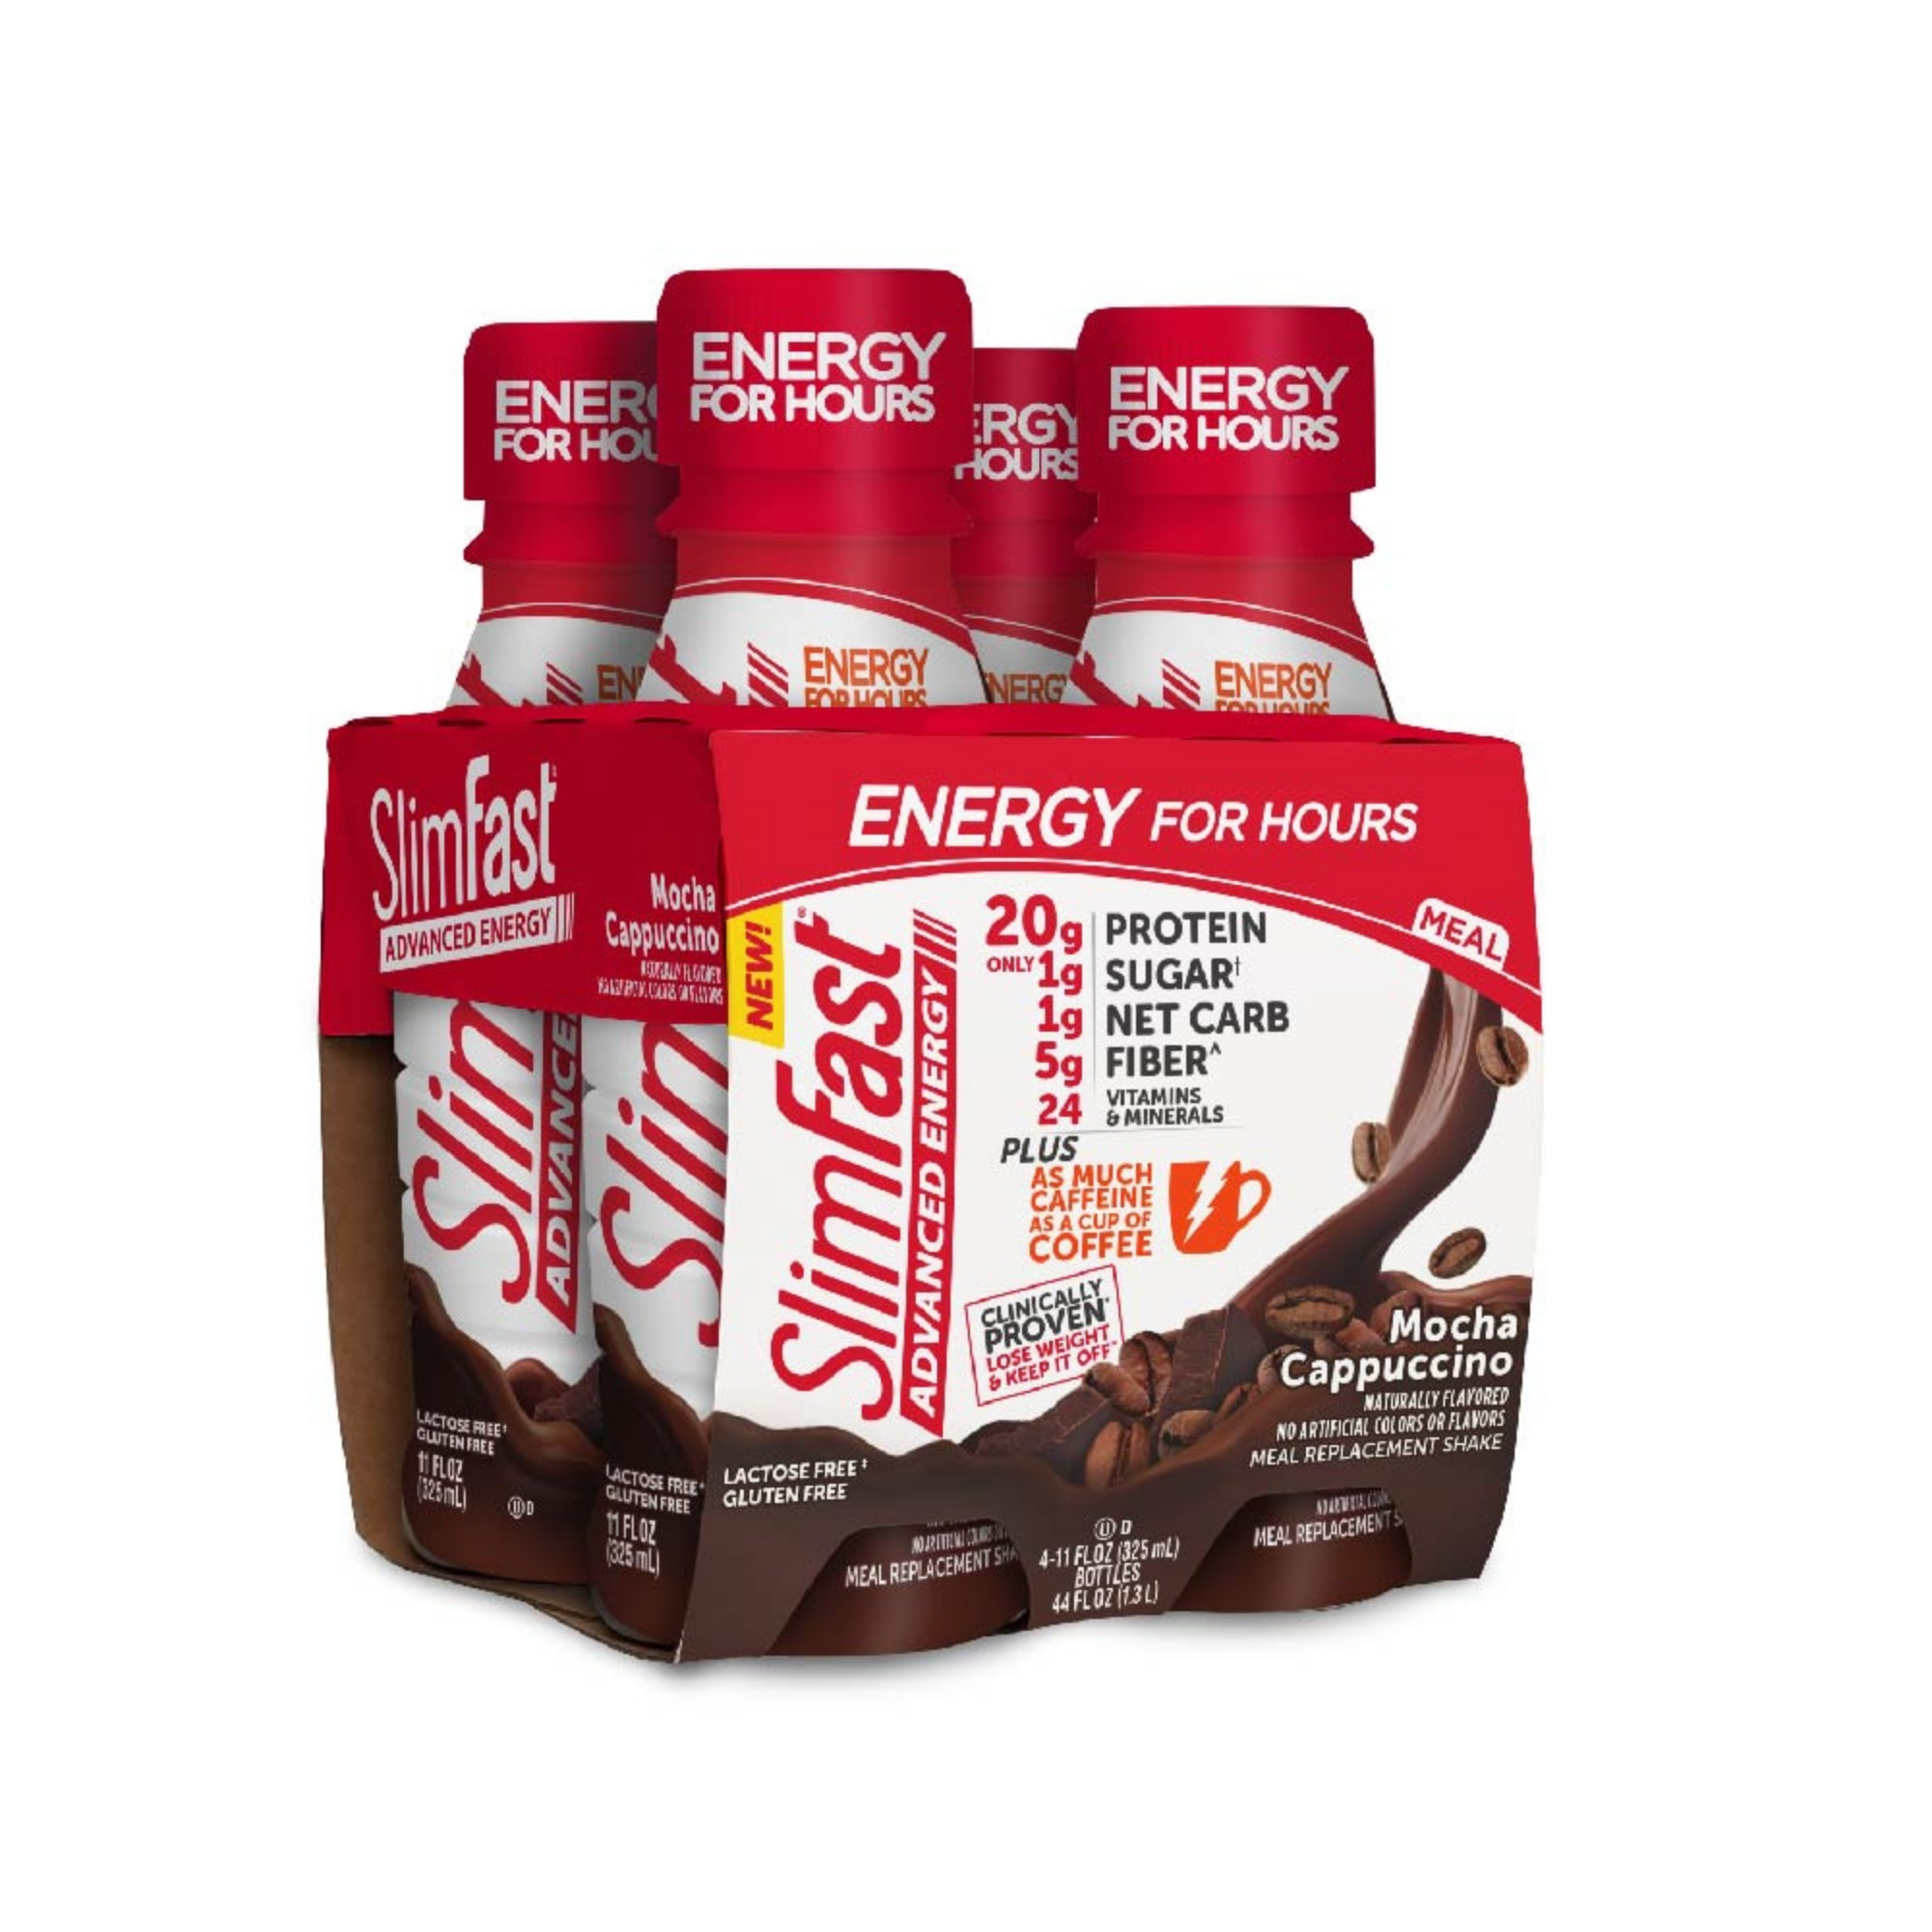 SlimFast Advanced Energy High Protein Ready to Drink Meal Replacement Shakes, Mocha Cappuccino, 11 fl. oz., Pack of 4